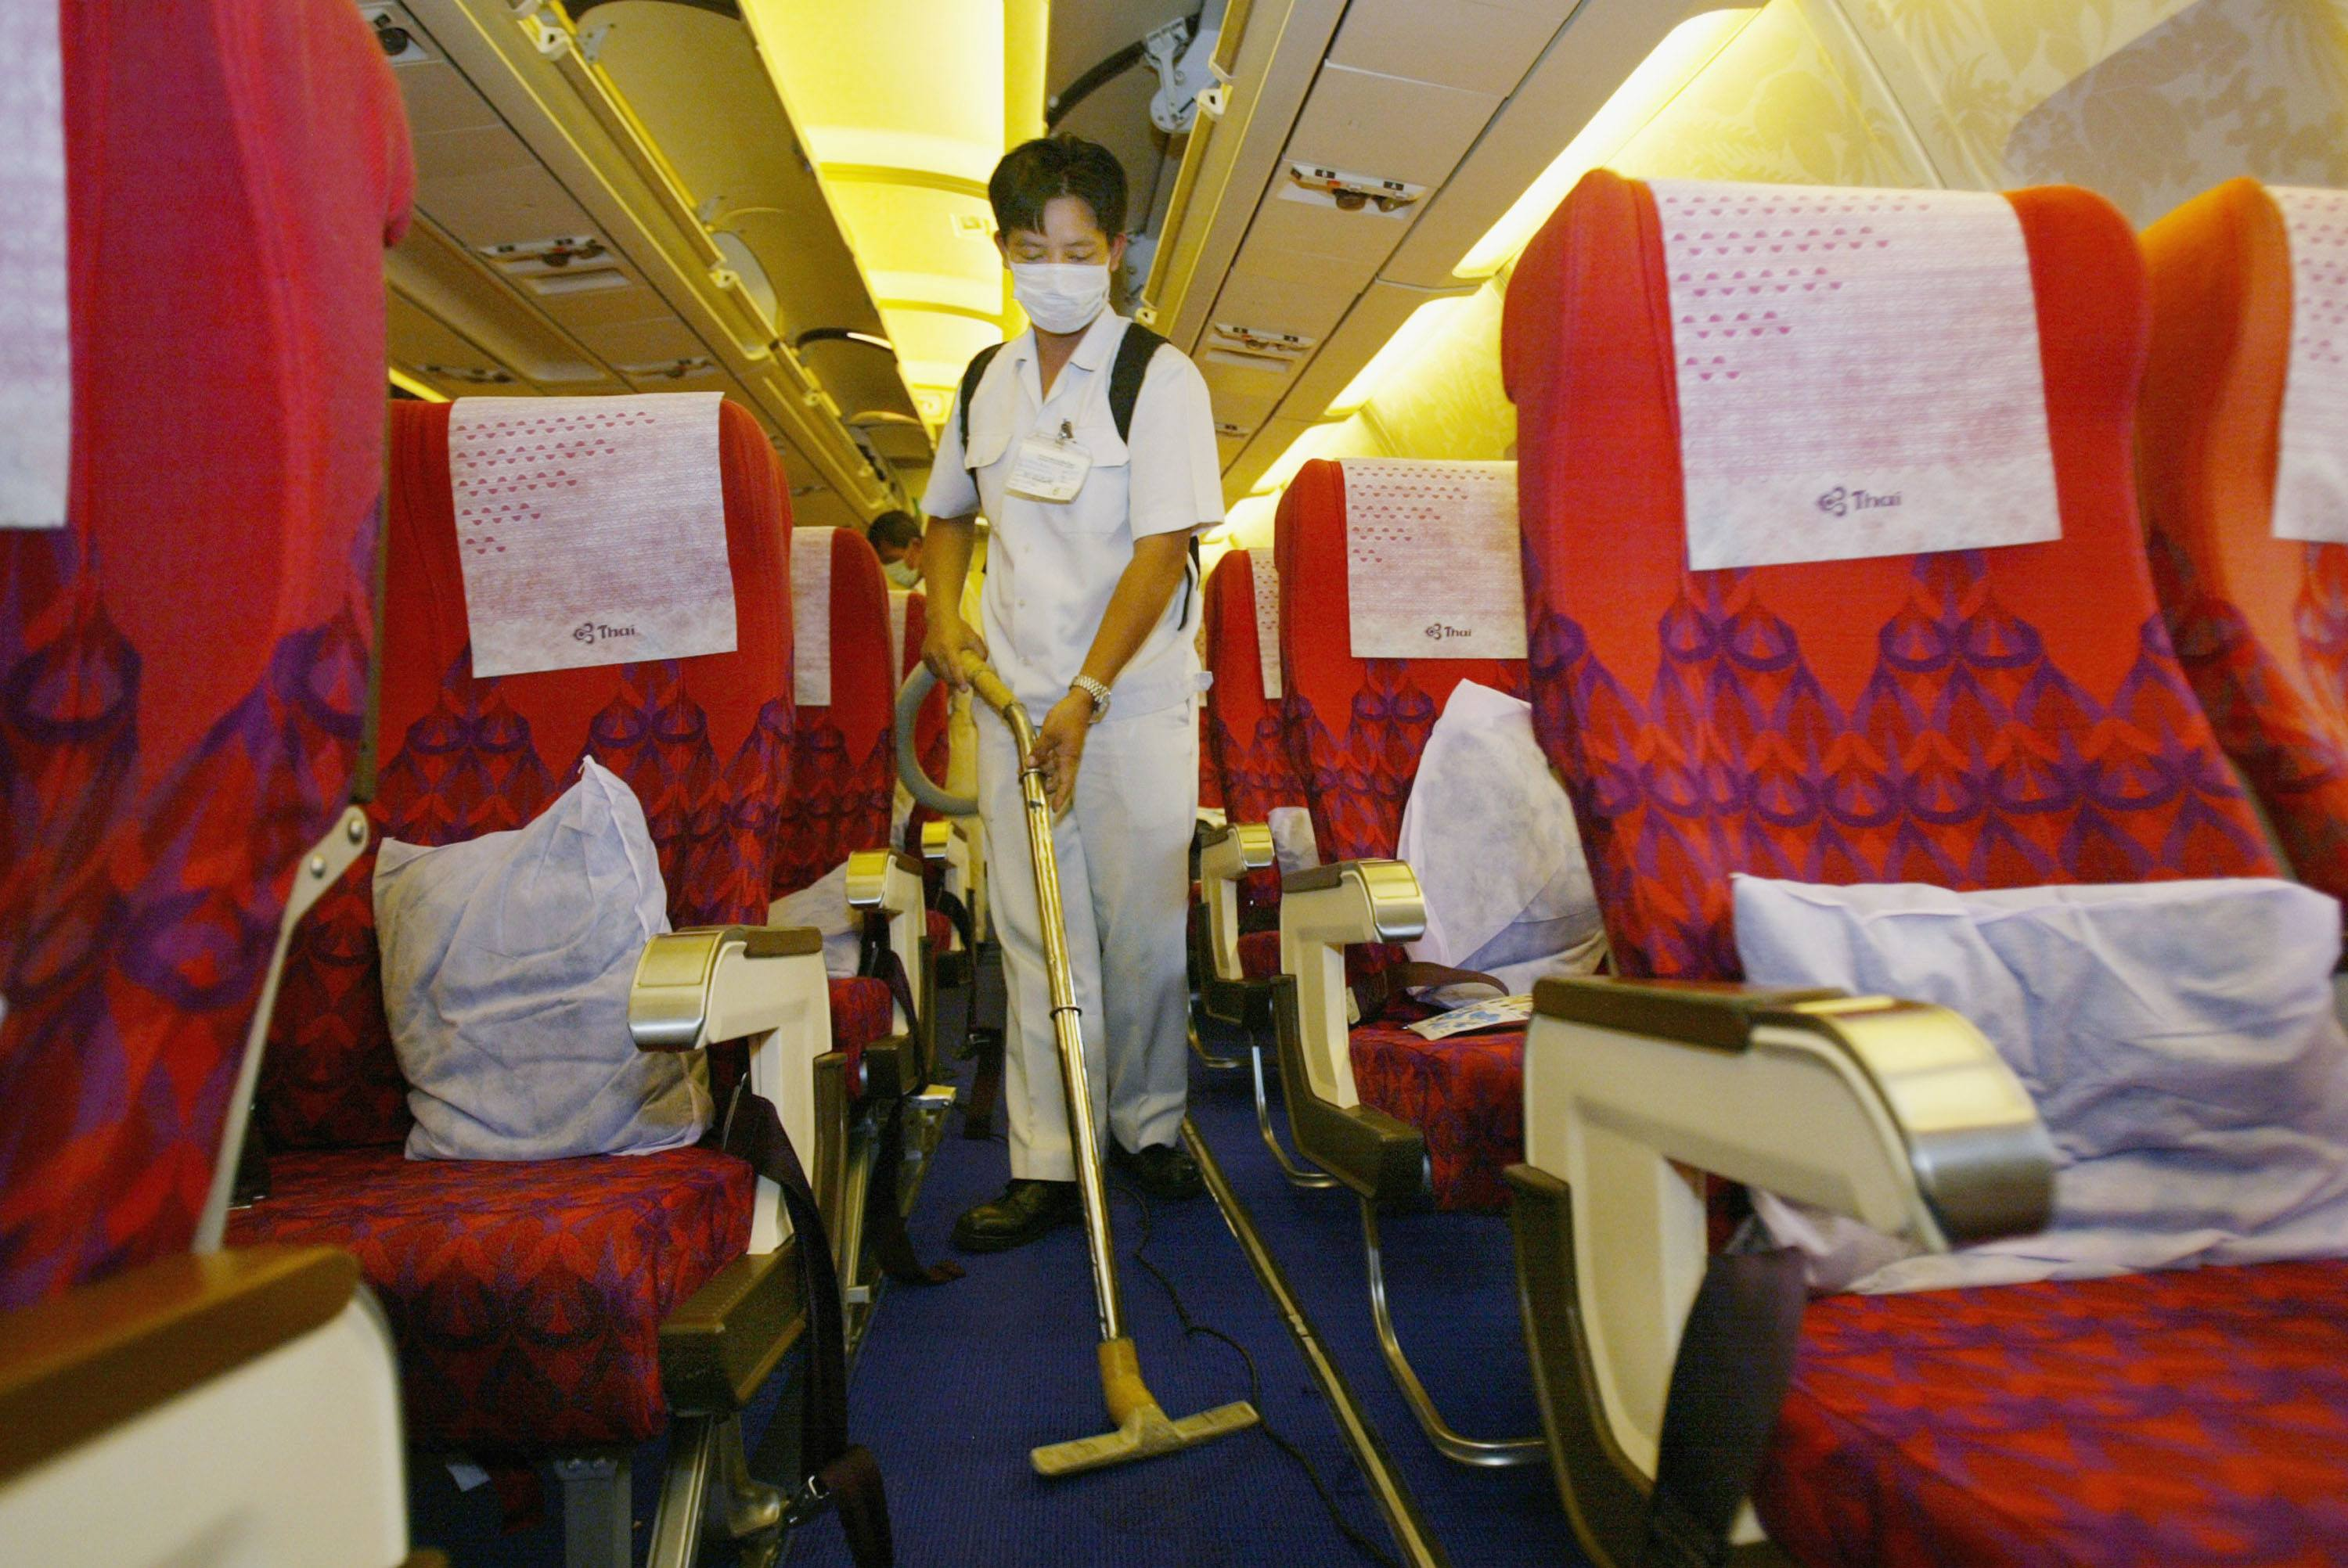 A Thai airlines staff worker cleans the aircraft wearing a surgical mask